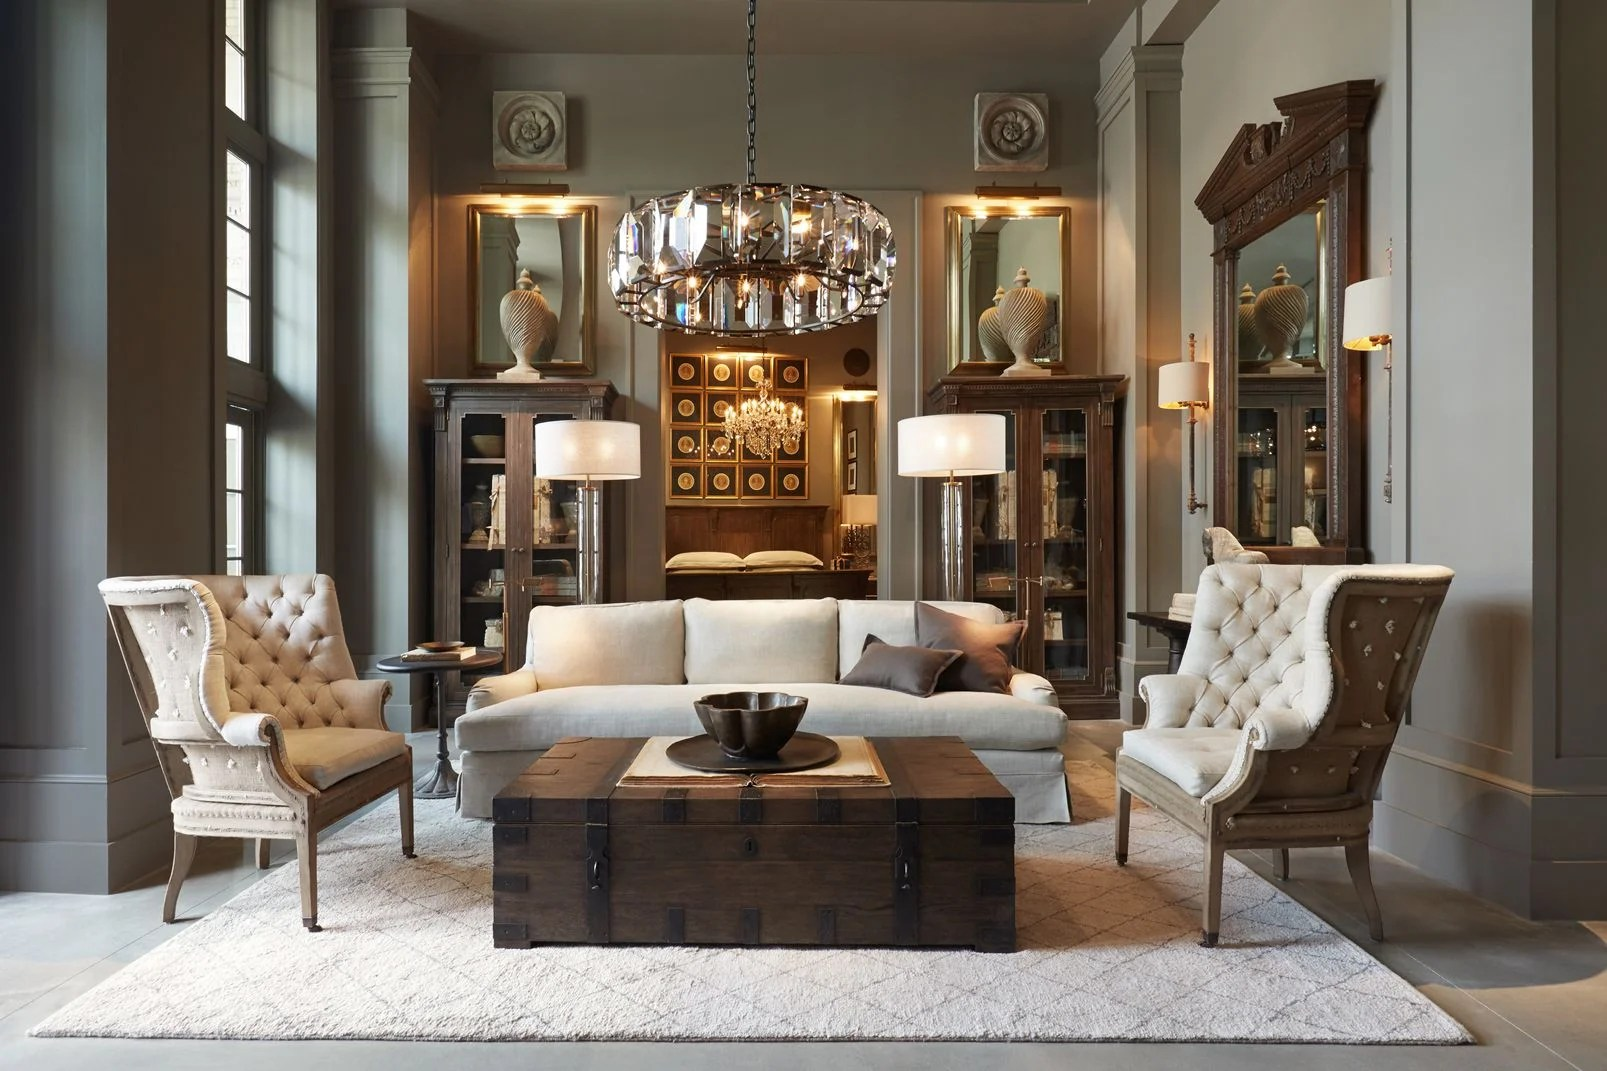 Why Restoration Hardware Holdings Stock Plunged Today  The Motley Fool